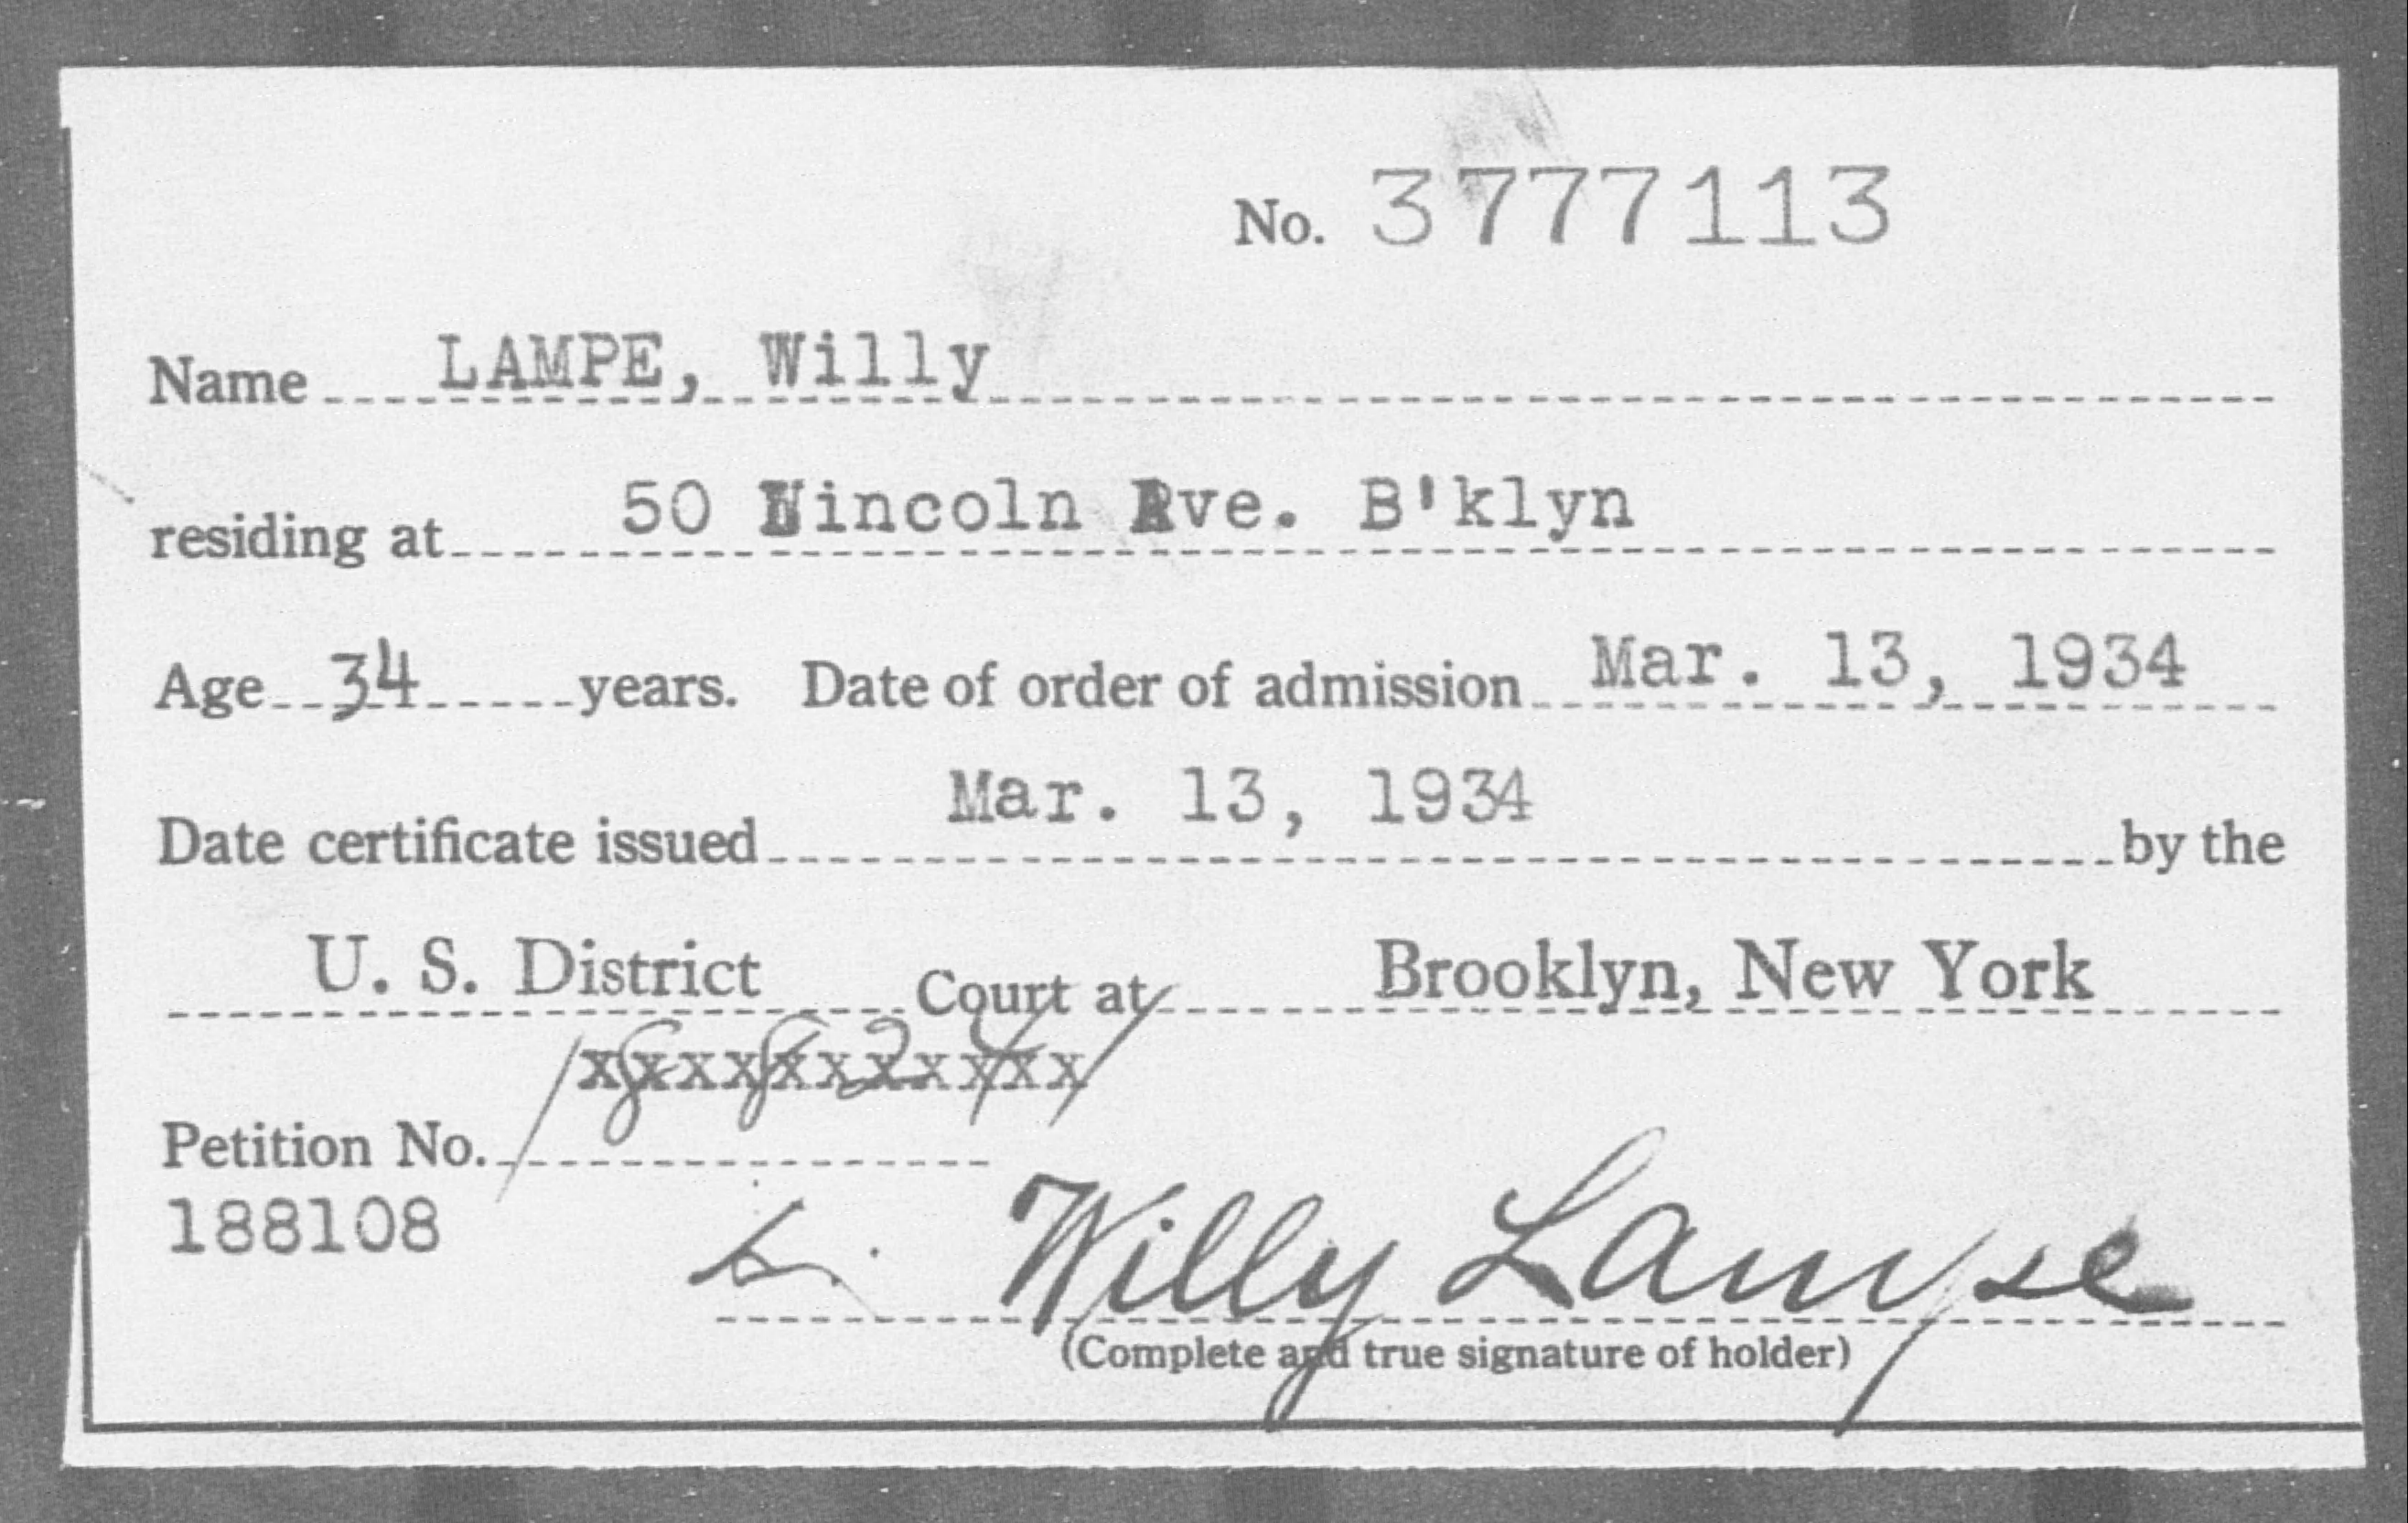 Lampe, Willy - Born: [BLANK], Naturalized: 1934